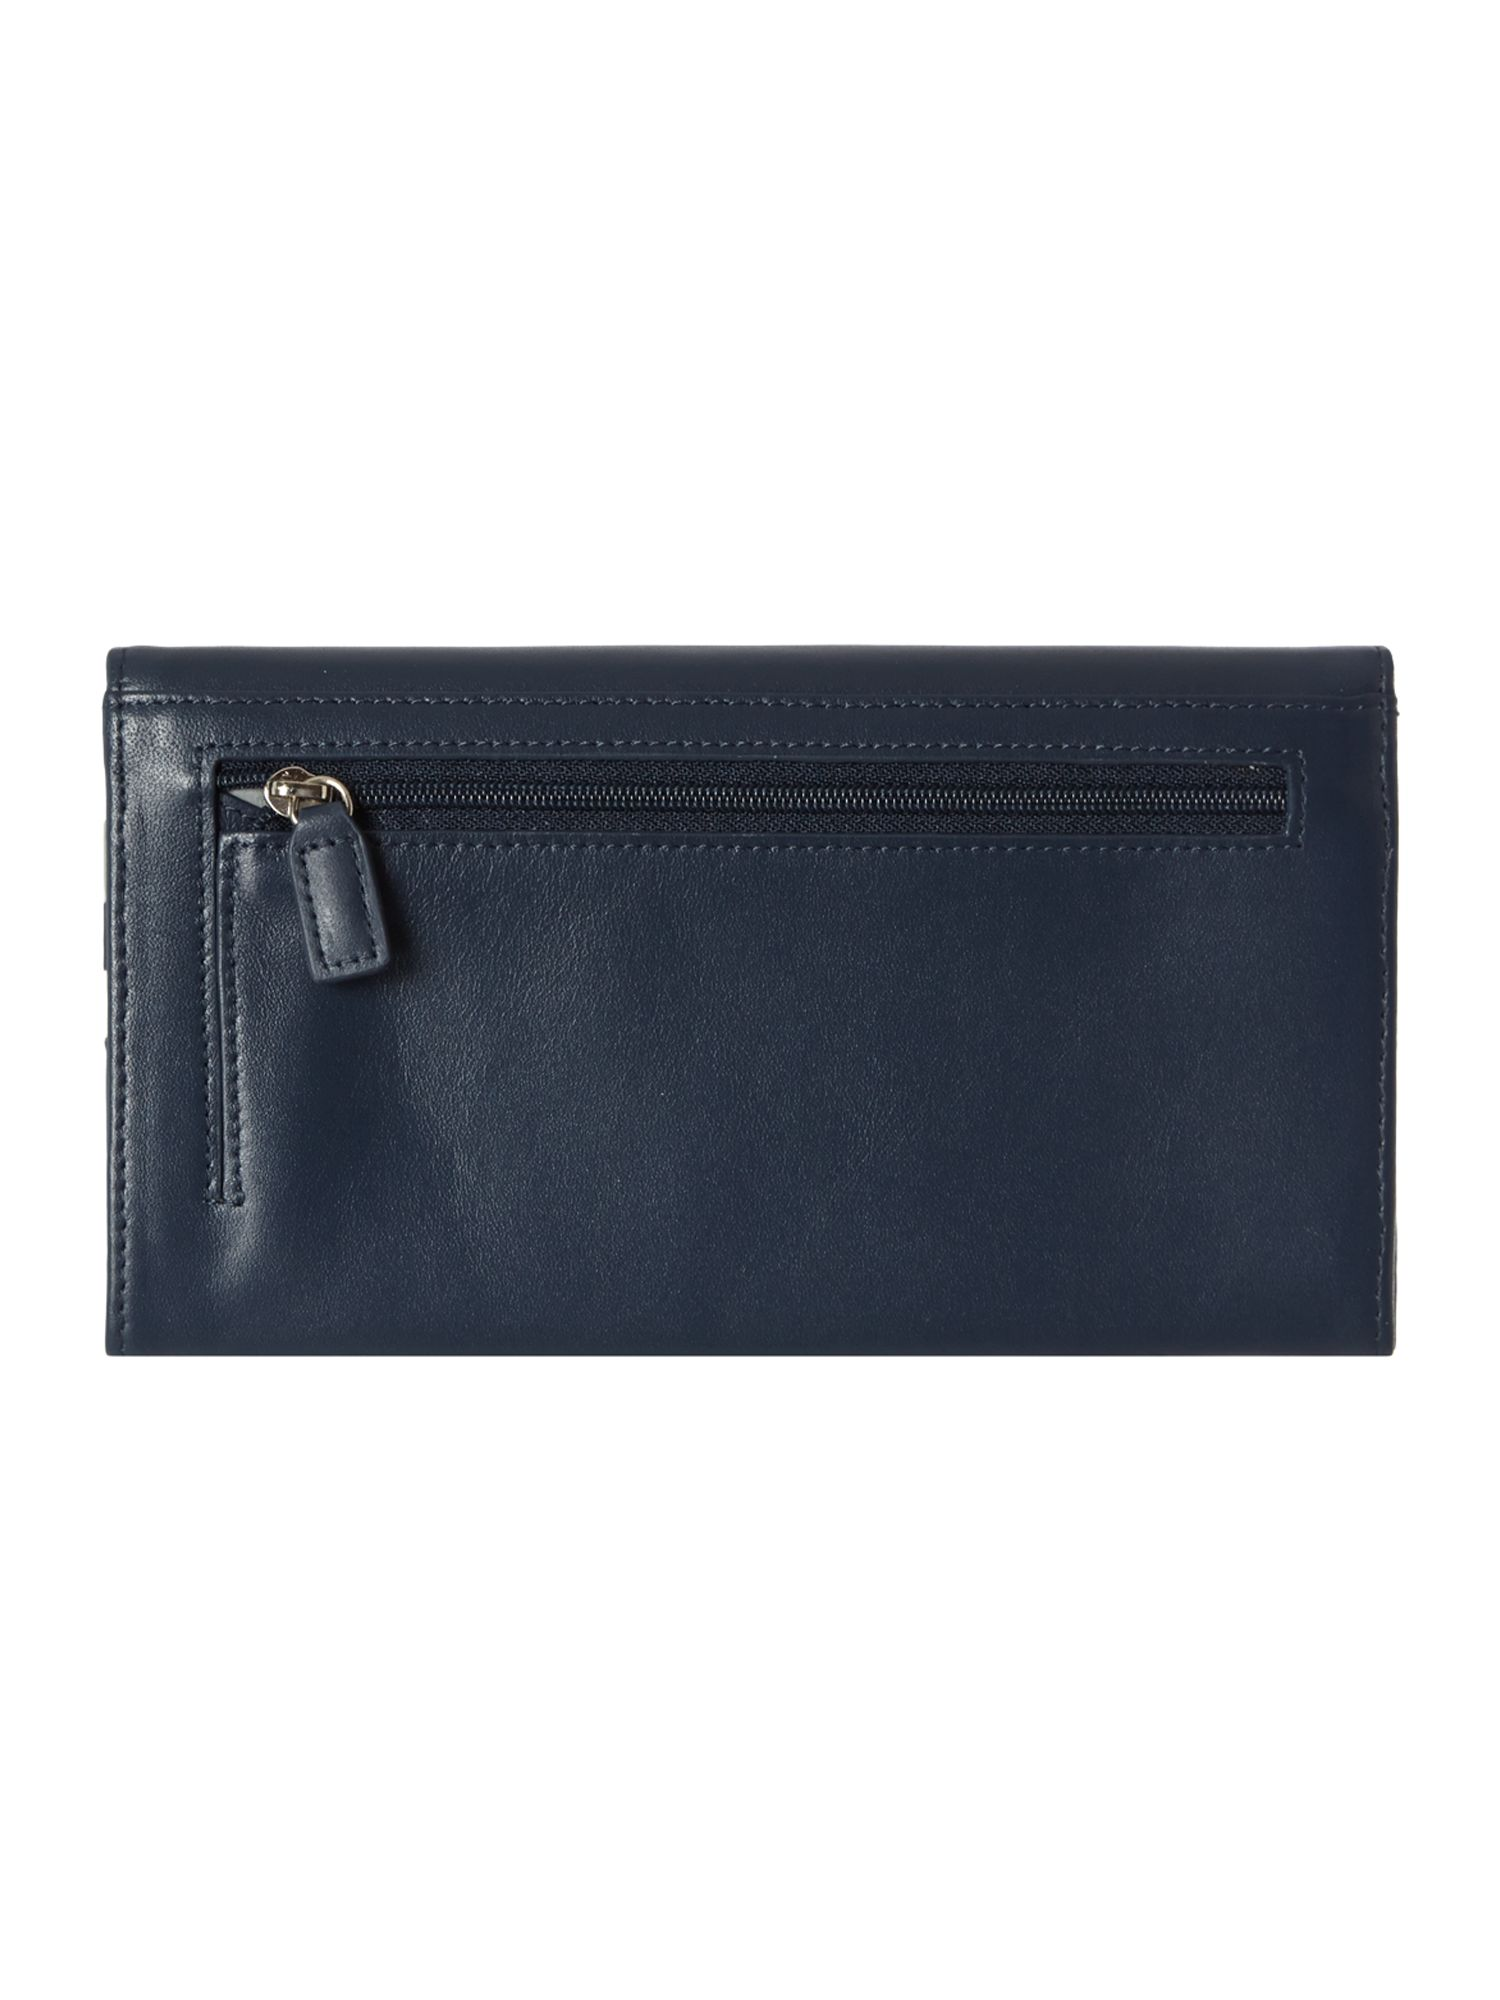 March the march navy large flapover matinee purse